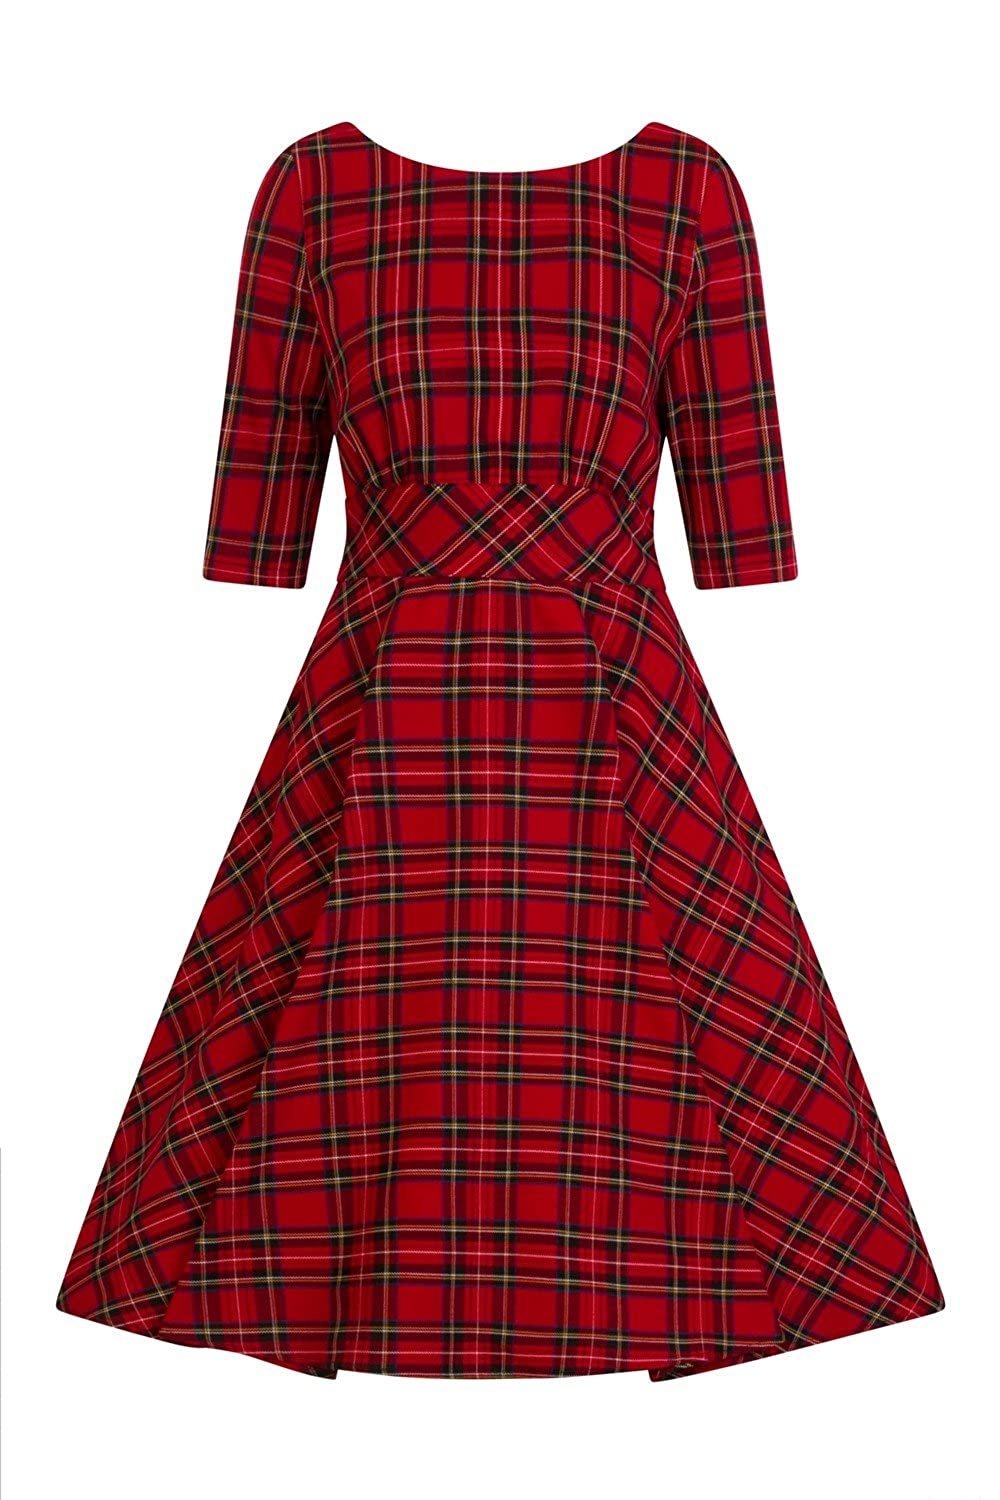 Agent Peggy Carter Costume, Dress, Hats Hell Bunny Irvine Tartan 1950s Vintage Retro Dress XS-4XL $72.99 AT vintagedancer.com